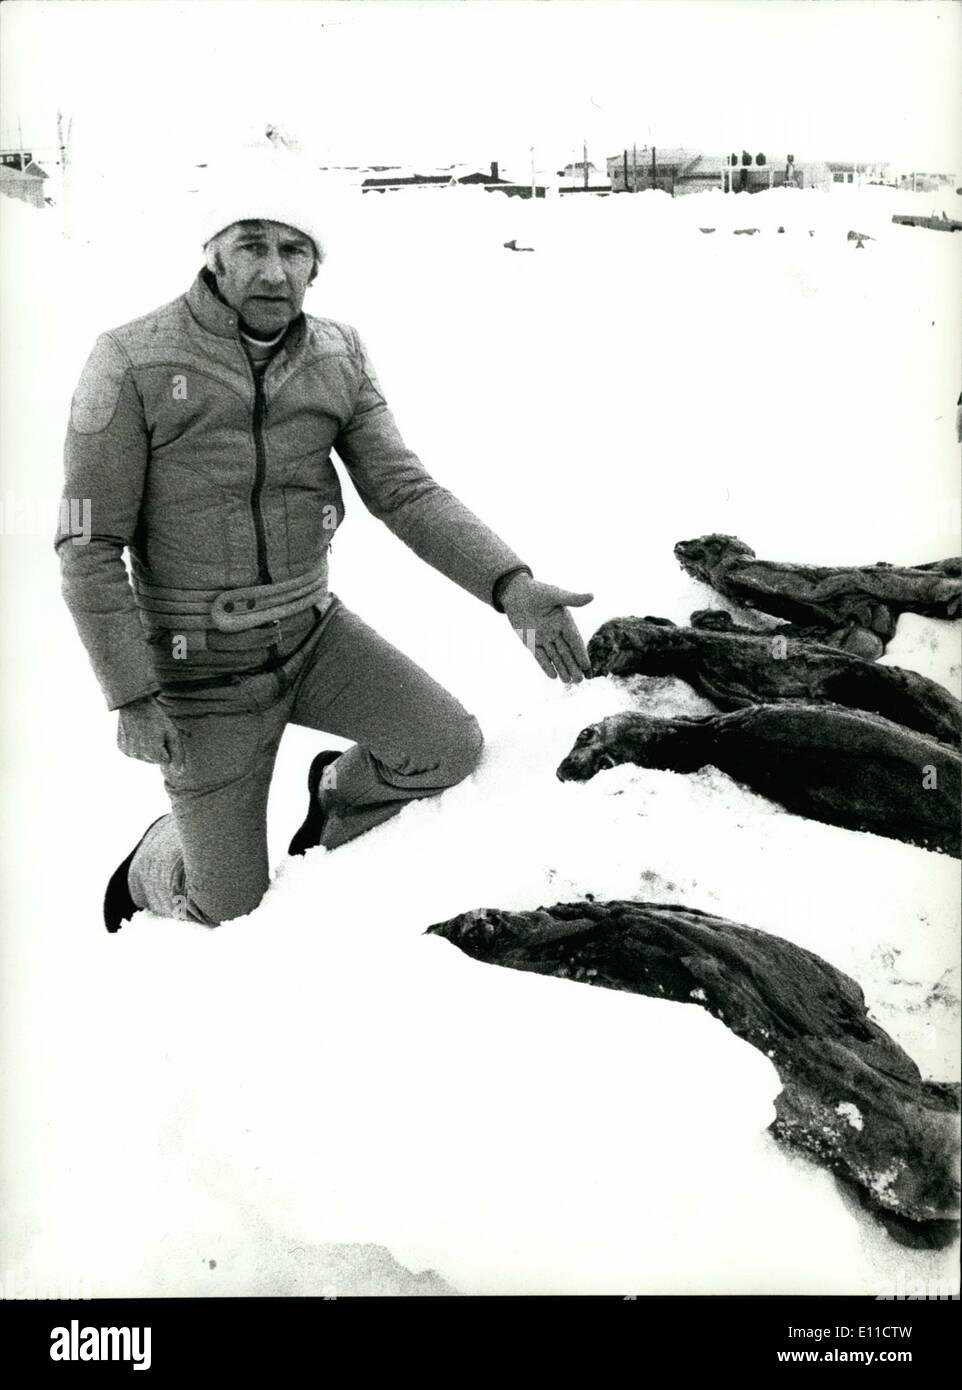 Mar. 03, 1977 - Journalist Expedition to Canadian Seal Hunt: The Weber Foundation, charted by Swiss law in 1975, - Stock Image